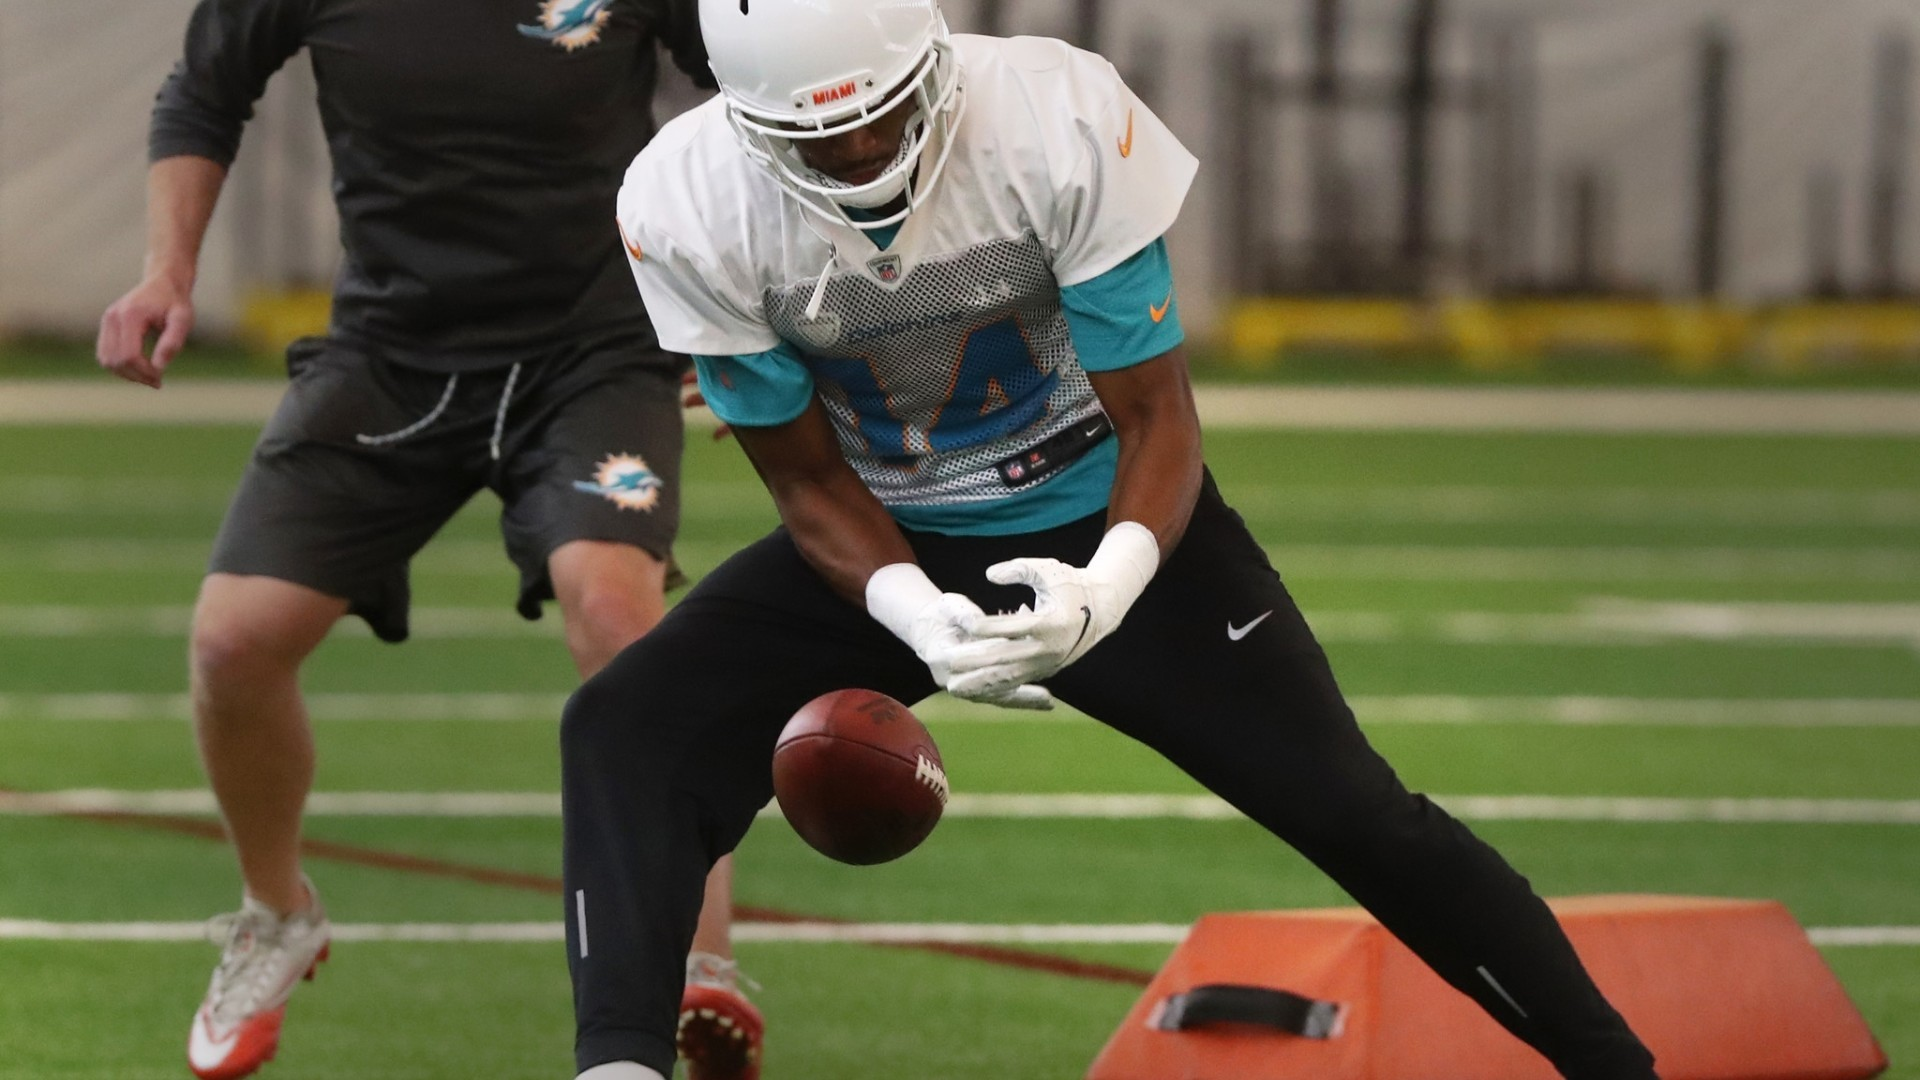 Sfl-1st-and-10-with-dolphins-wide-receiver-brice-butler-20181213